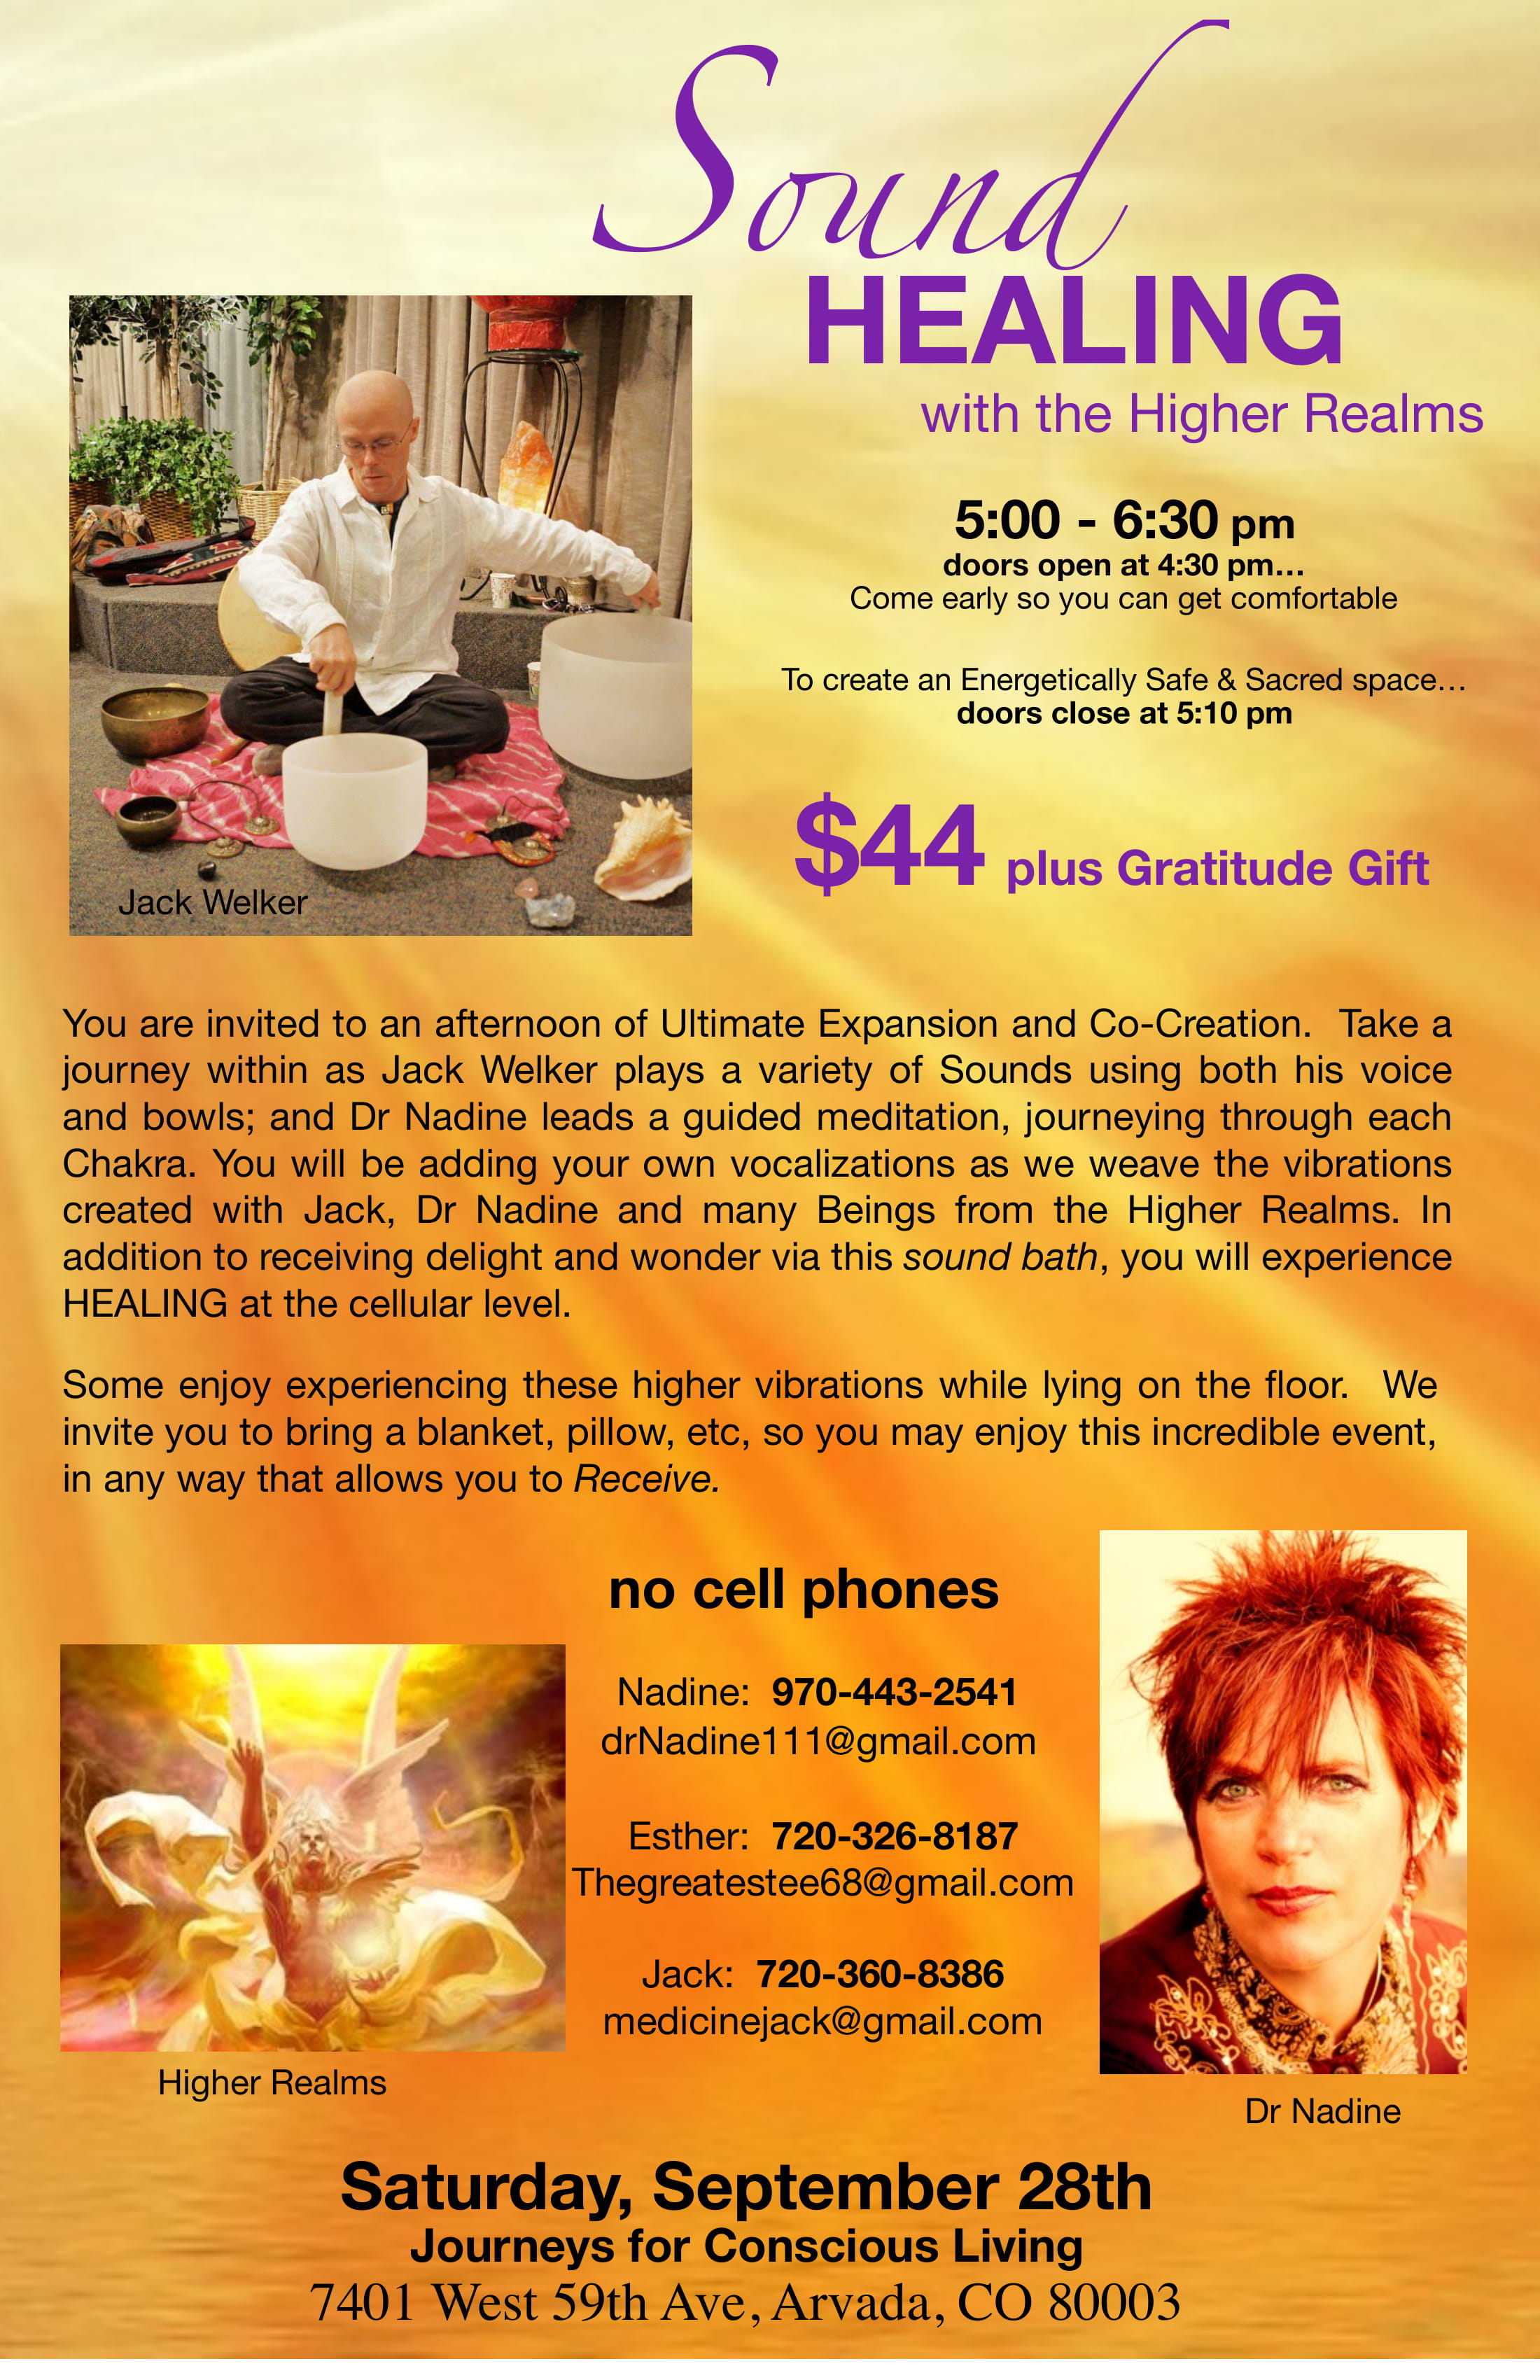 SOUND HEALING with the Higher Realms